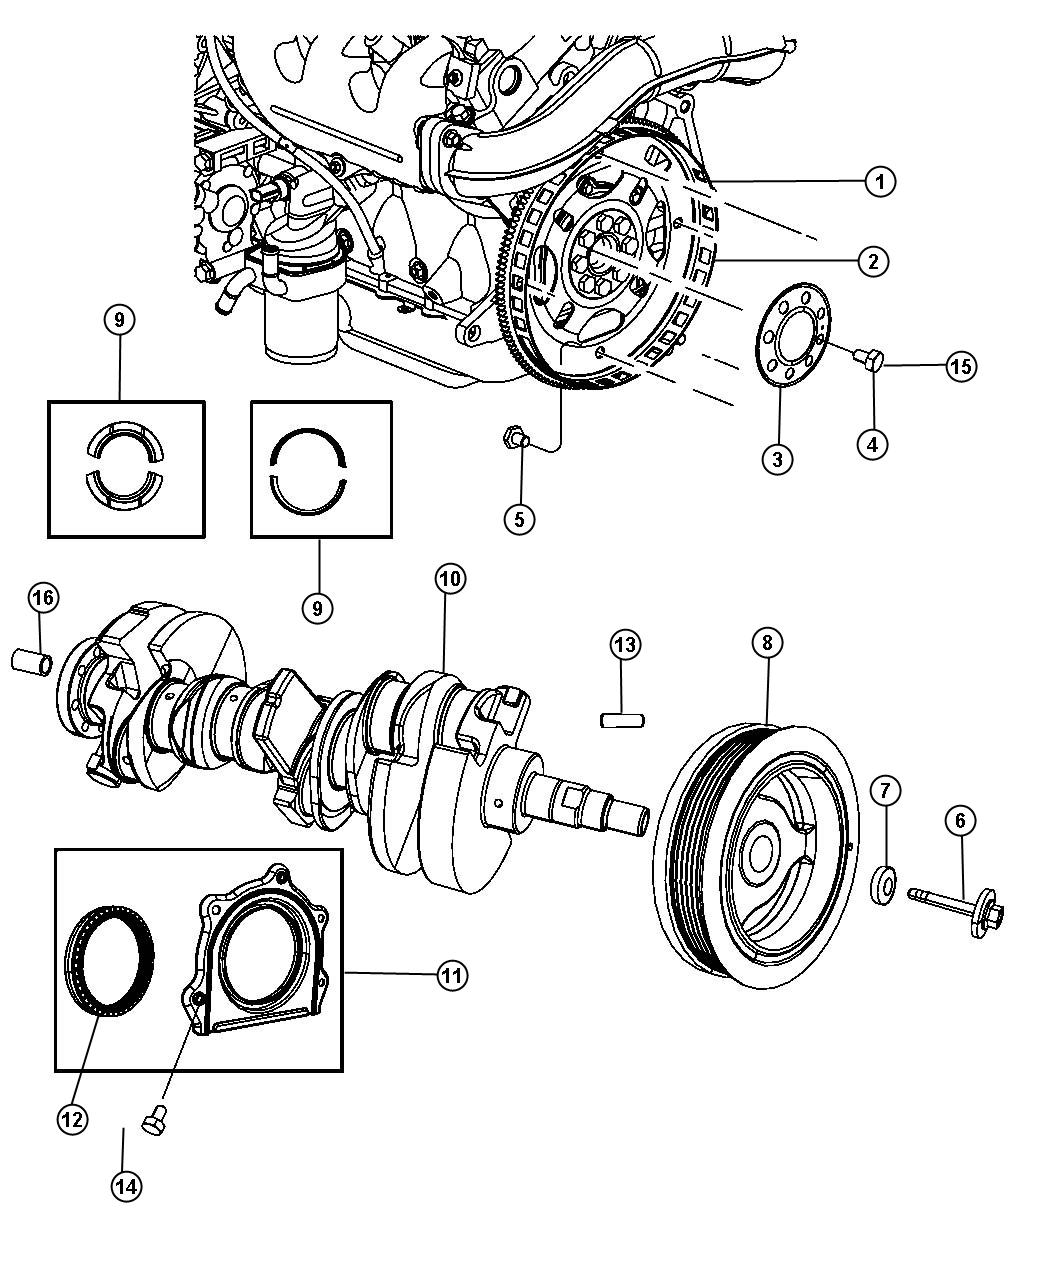 Jeep Wrangler Damper. Crankshaft. Bearings, egt, flywheel